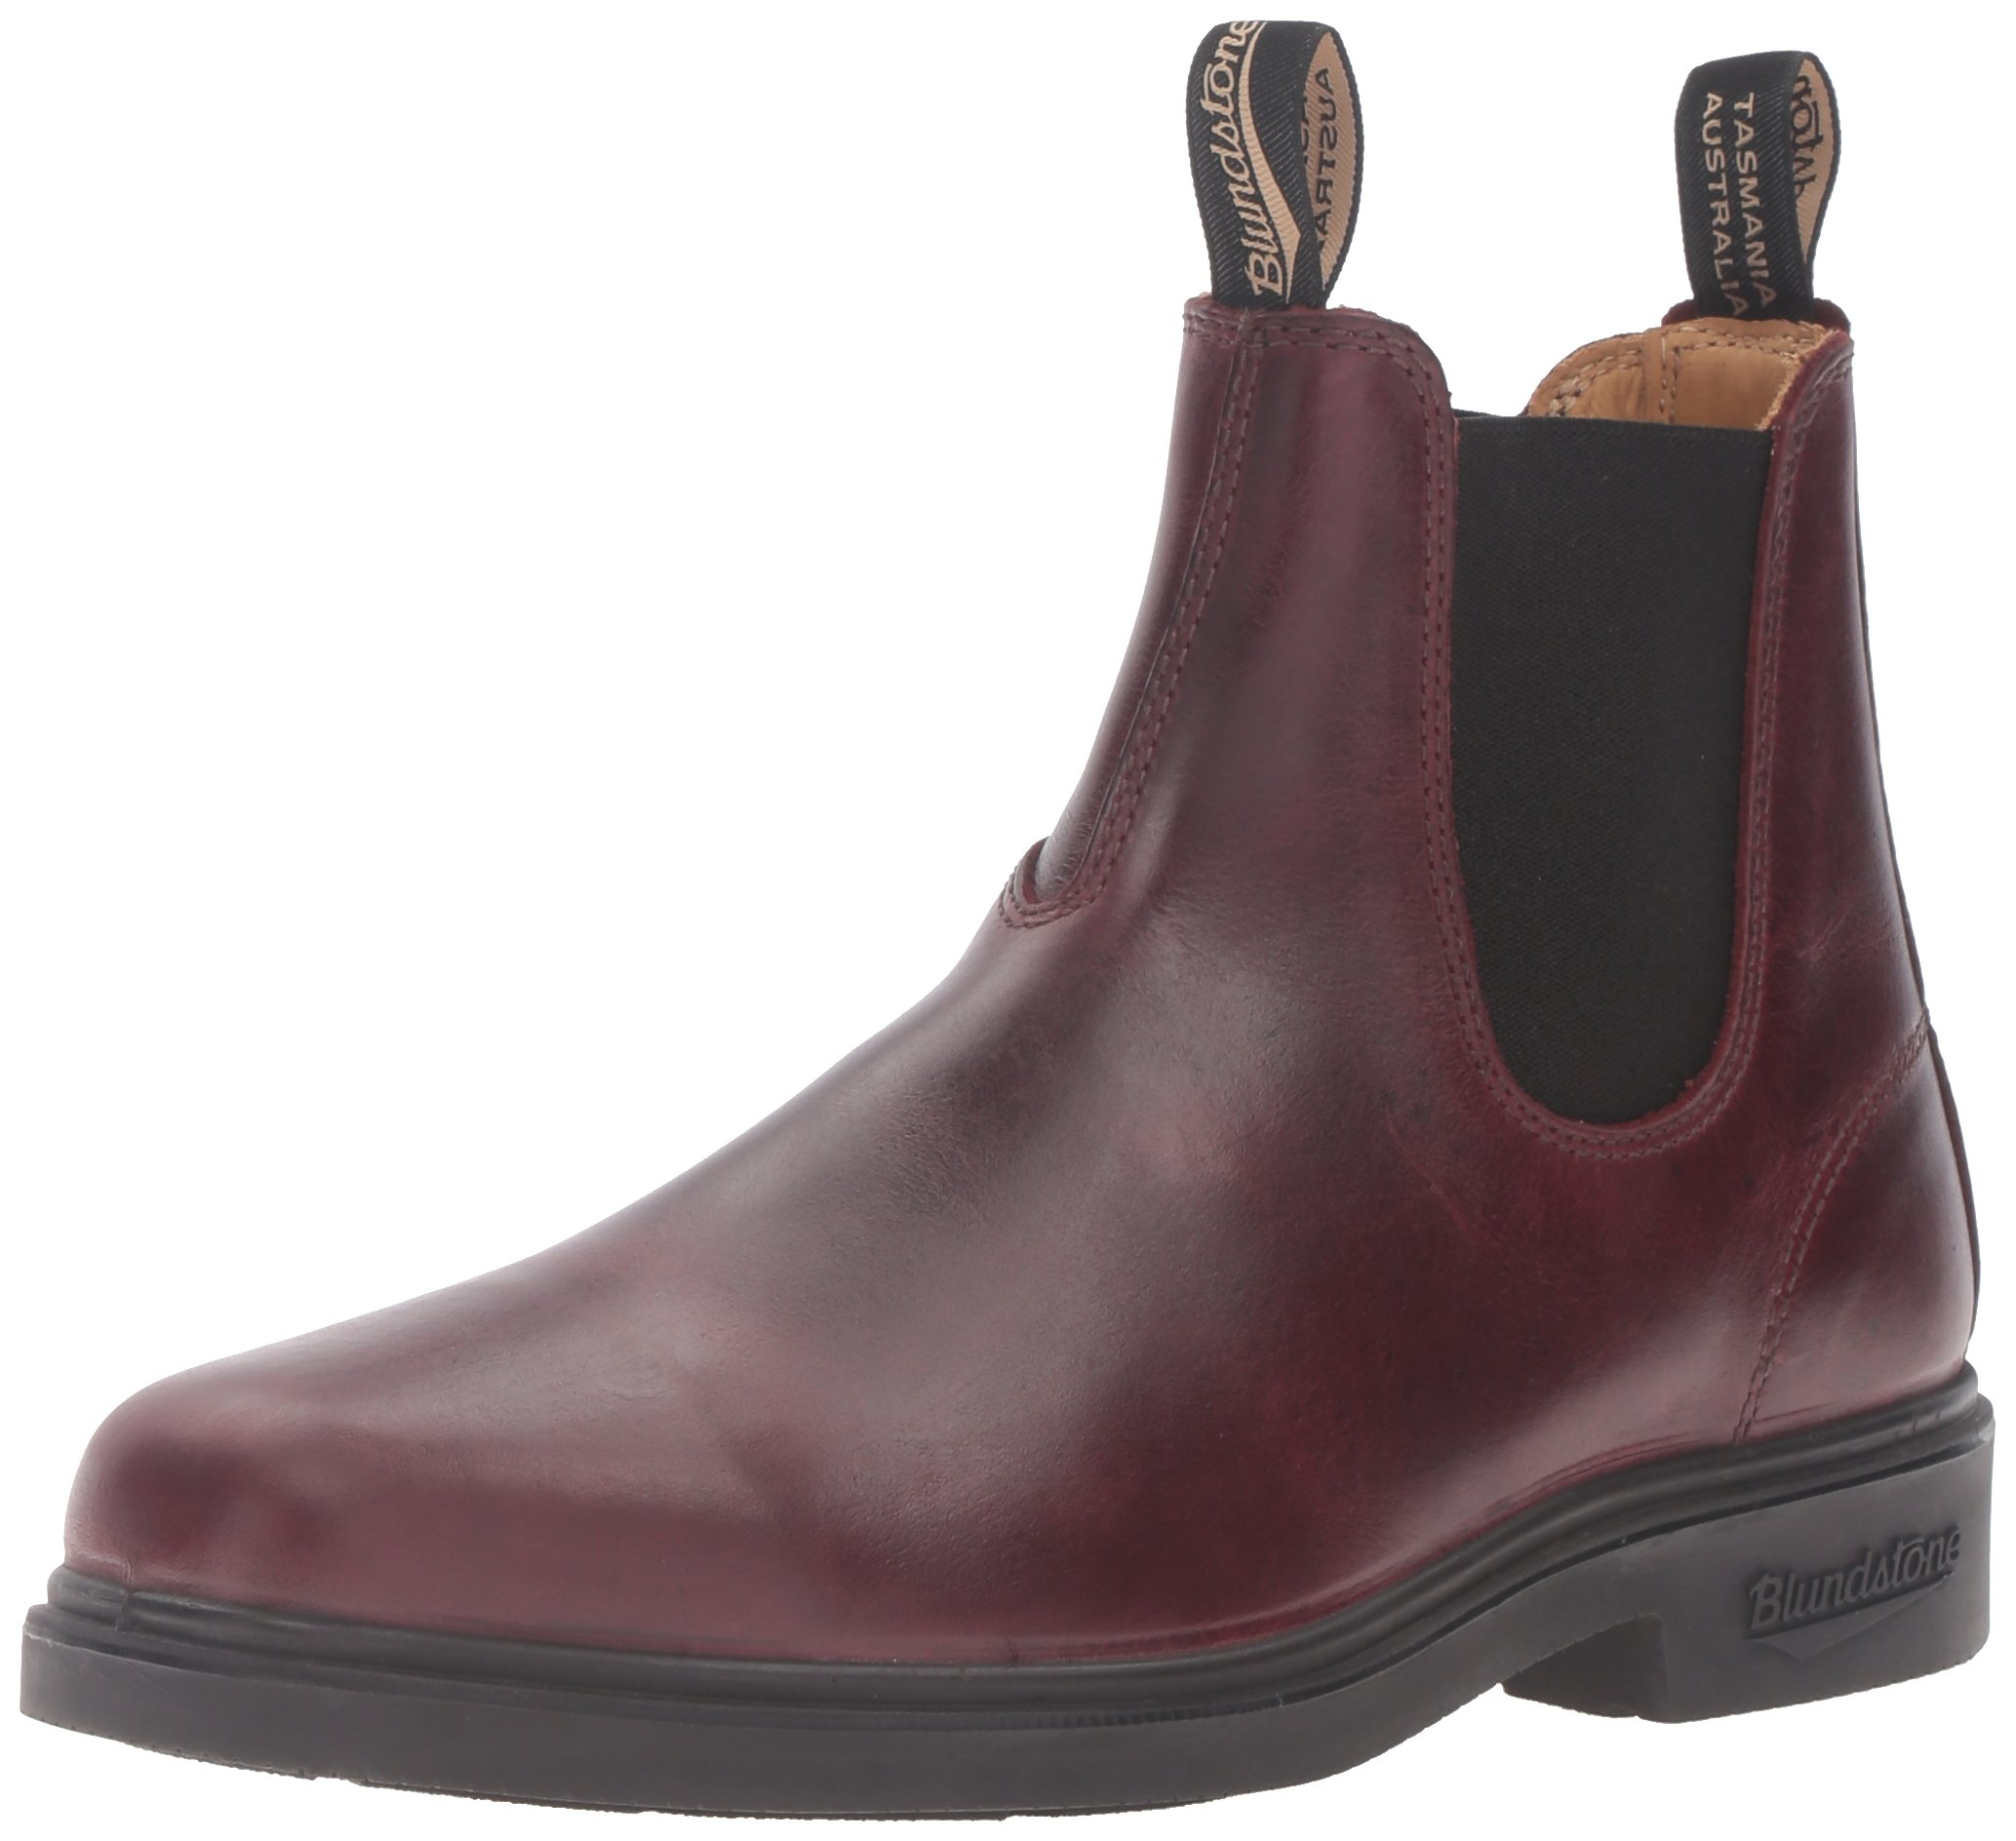 Blundstone Women's 1309 Chelsea Boot, Redwood, 4 UK/7 M US by Blundstone